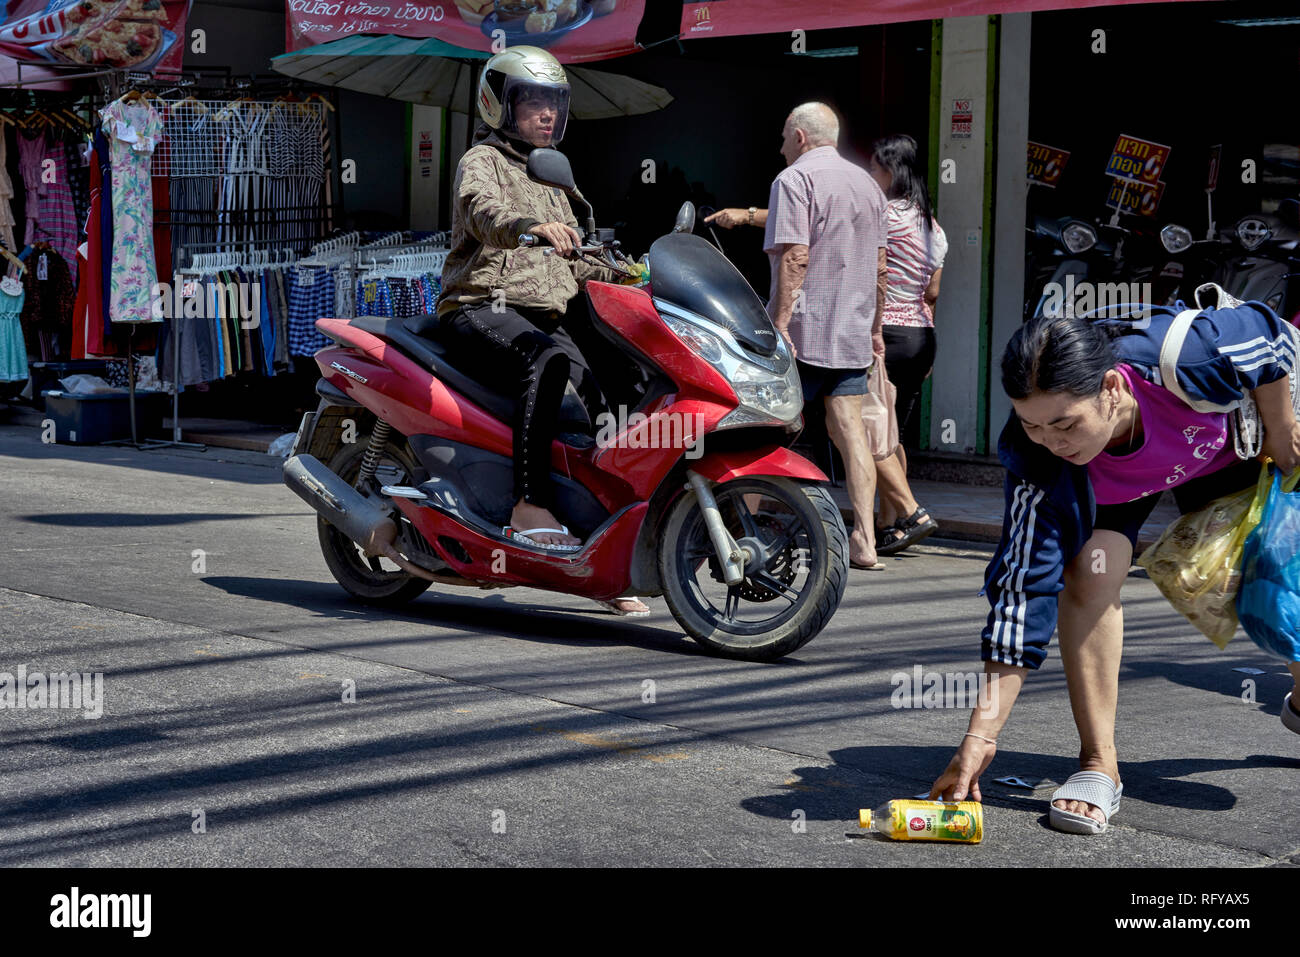 Woman taking a risk to retrieve drinks bottle with oncoming traffic. Risky action. Thailand Southeast Asia - Stock Image